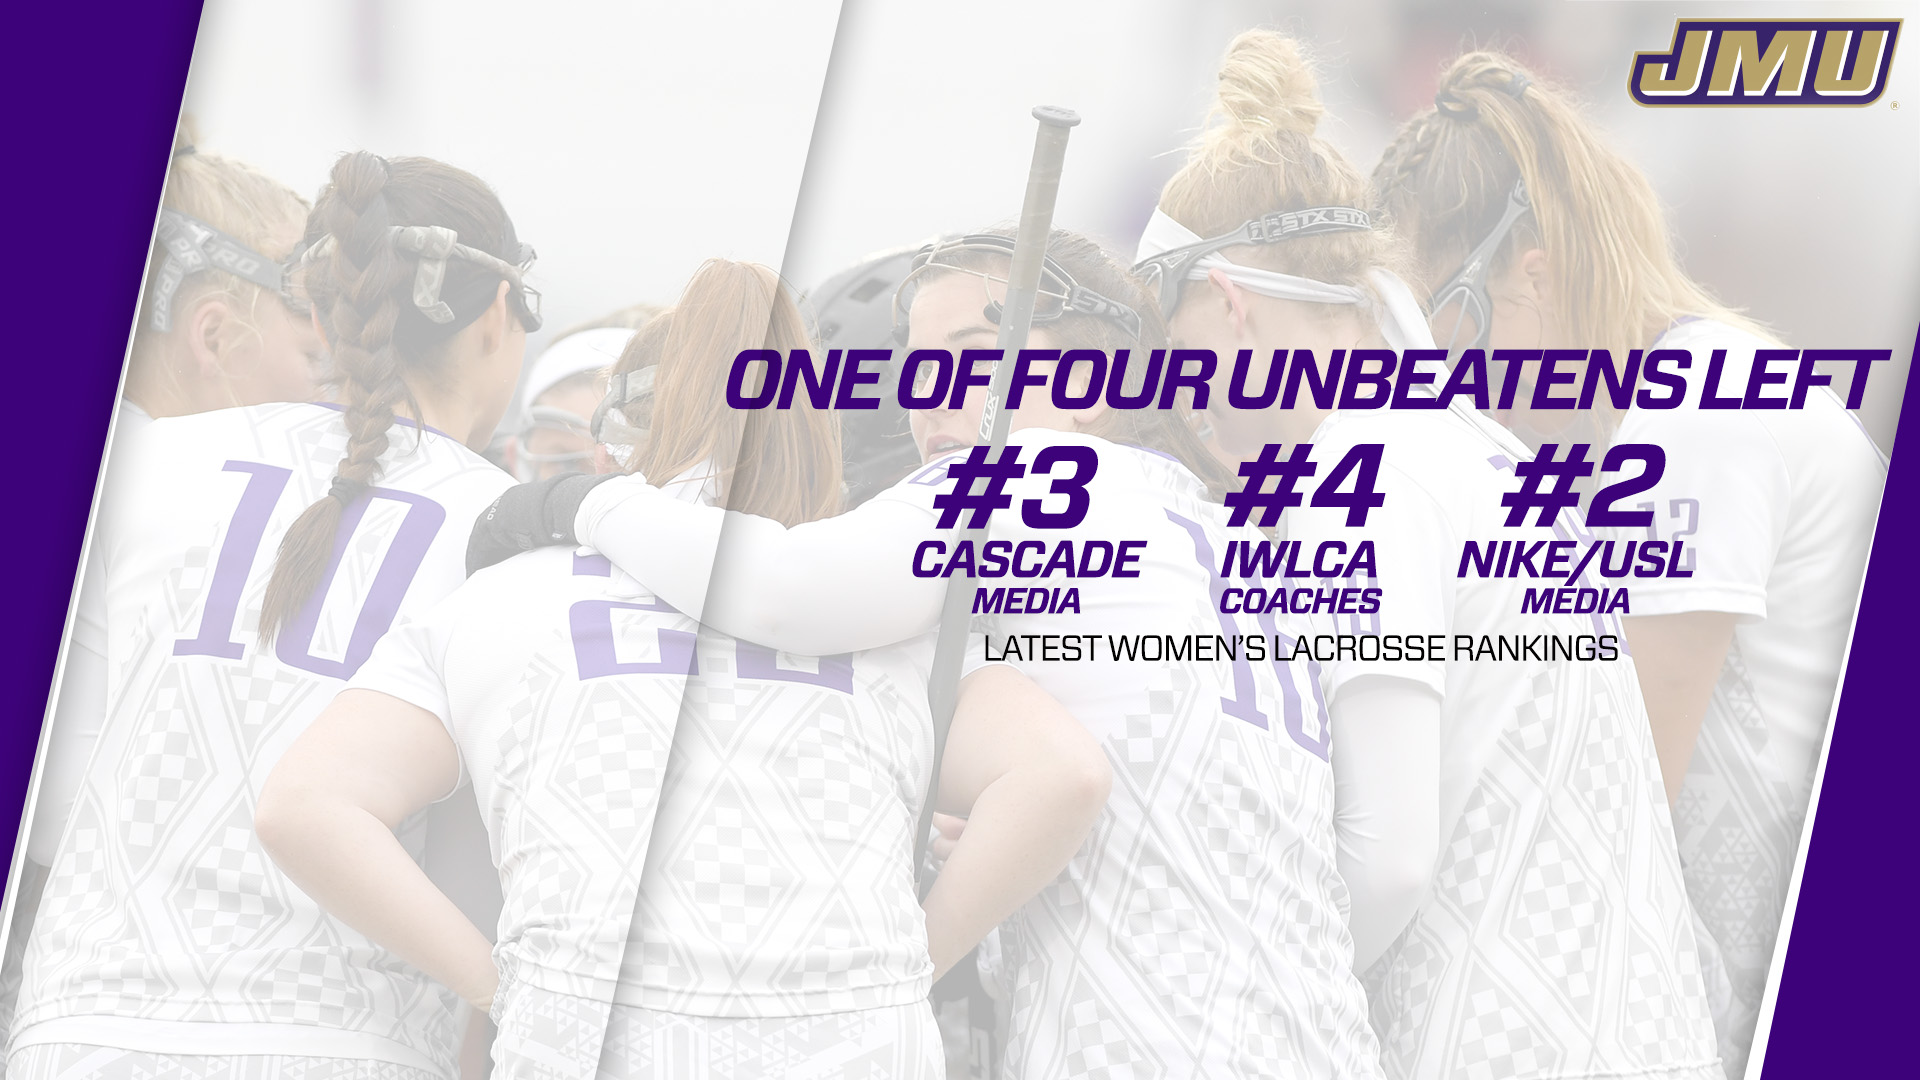 Women's Lacrosse: Dukes Hold Strong at #3 in Media Poll, Move Up to #4 in Coaches Poll)